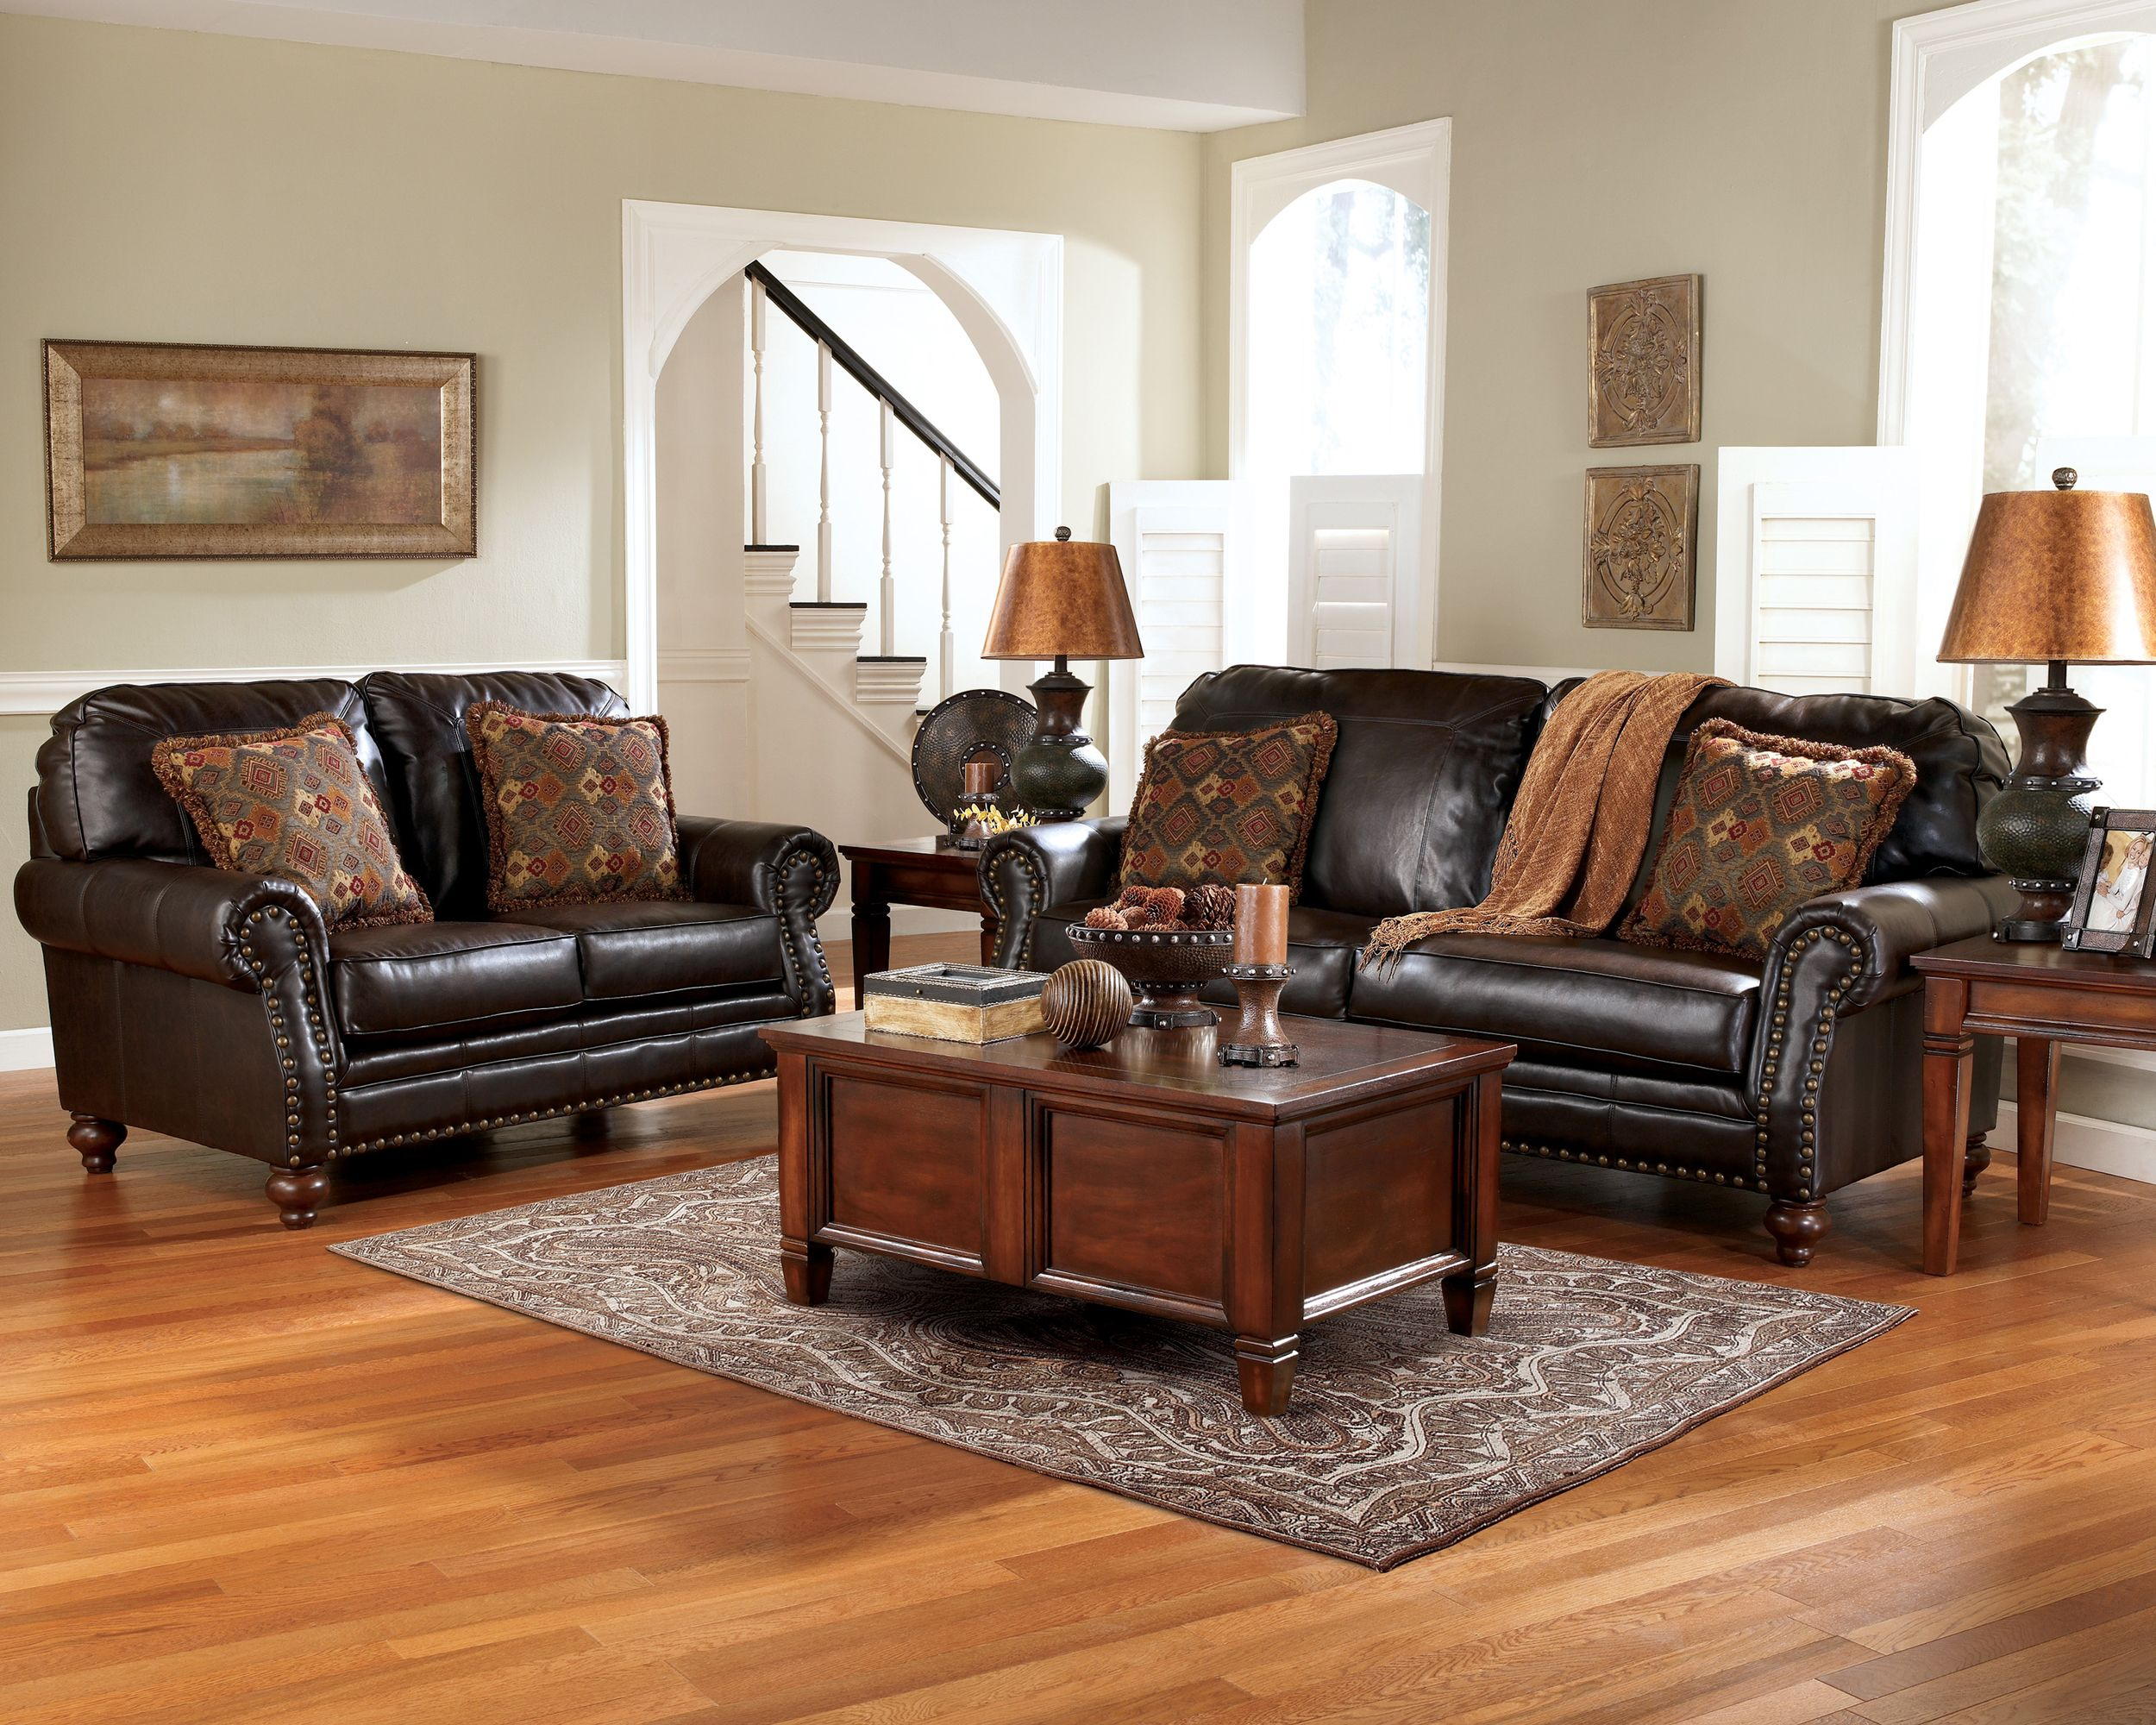 Laurelton Reclining Sofa Furniture Cincinnati OH